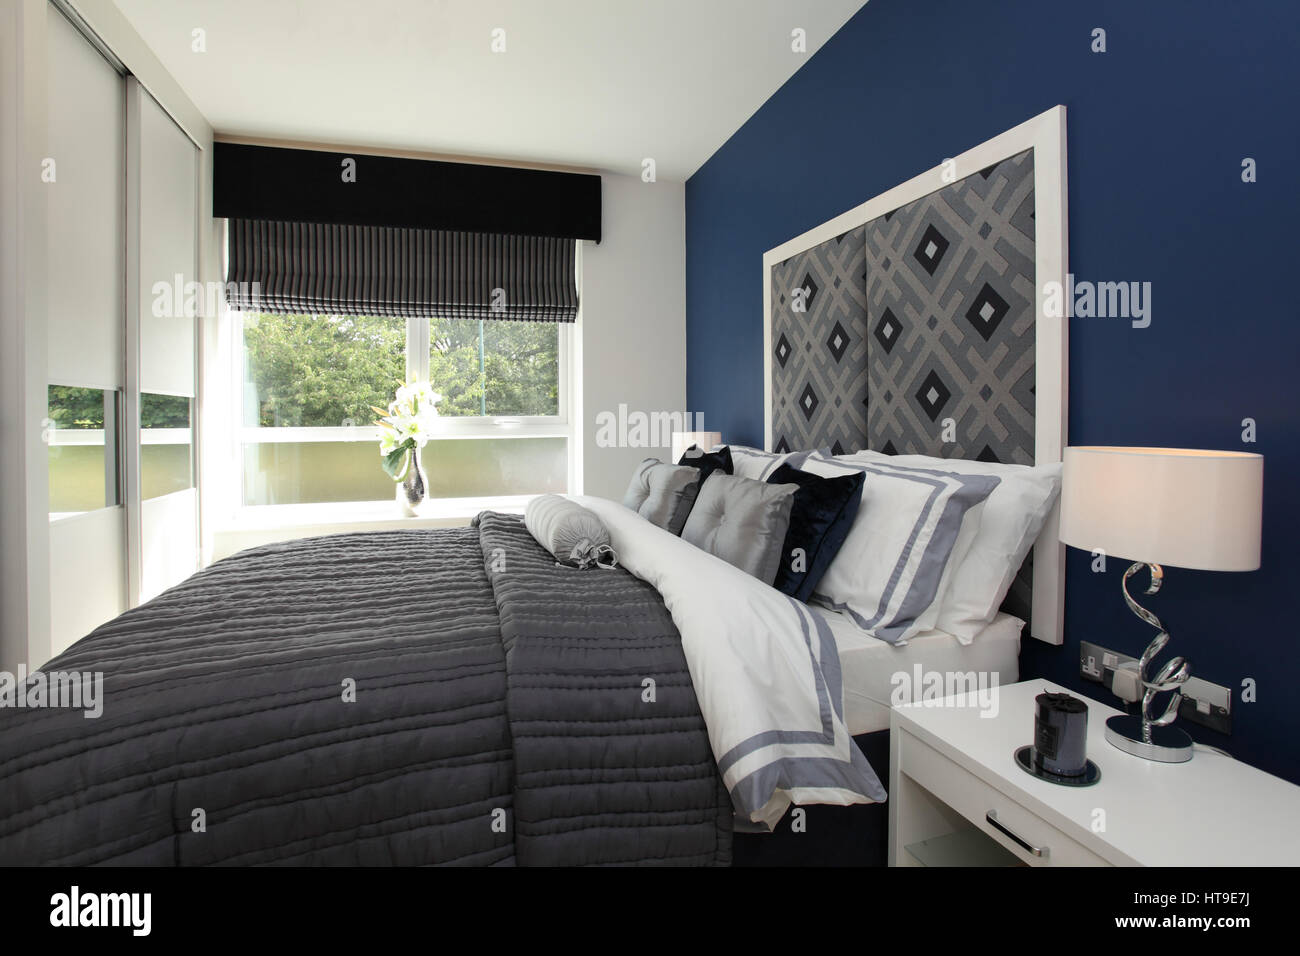 Home interior, bedroom, blue, decor, bed spread, padded headboard, feature wall, chair, grey, - Stock Image